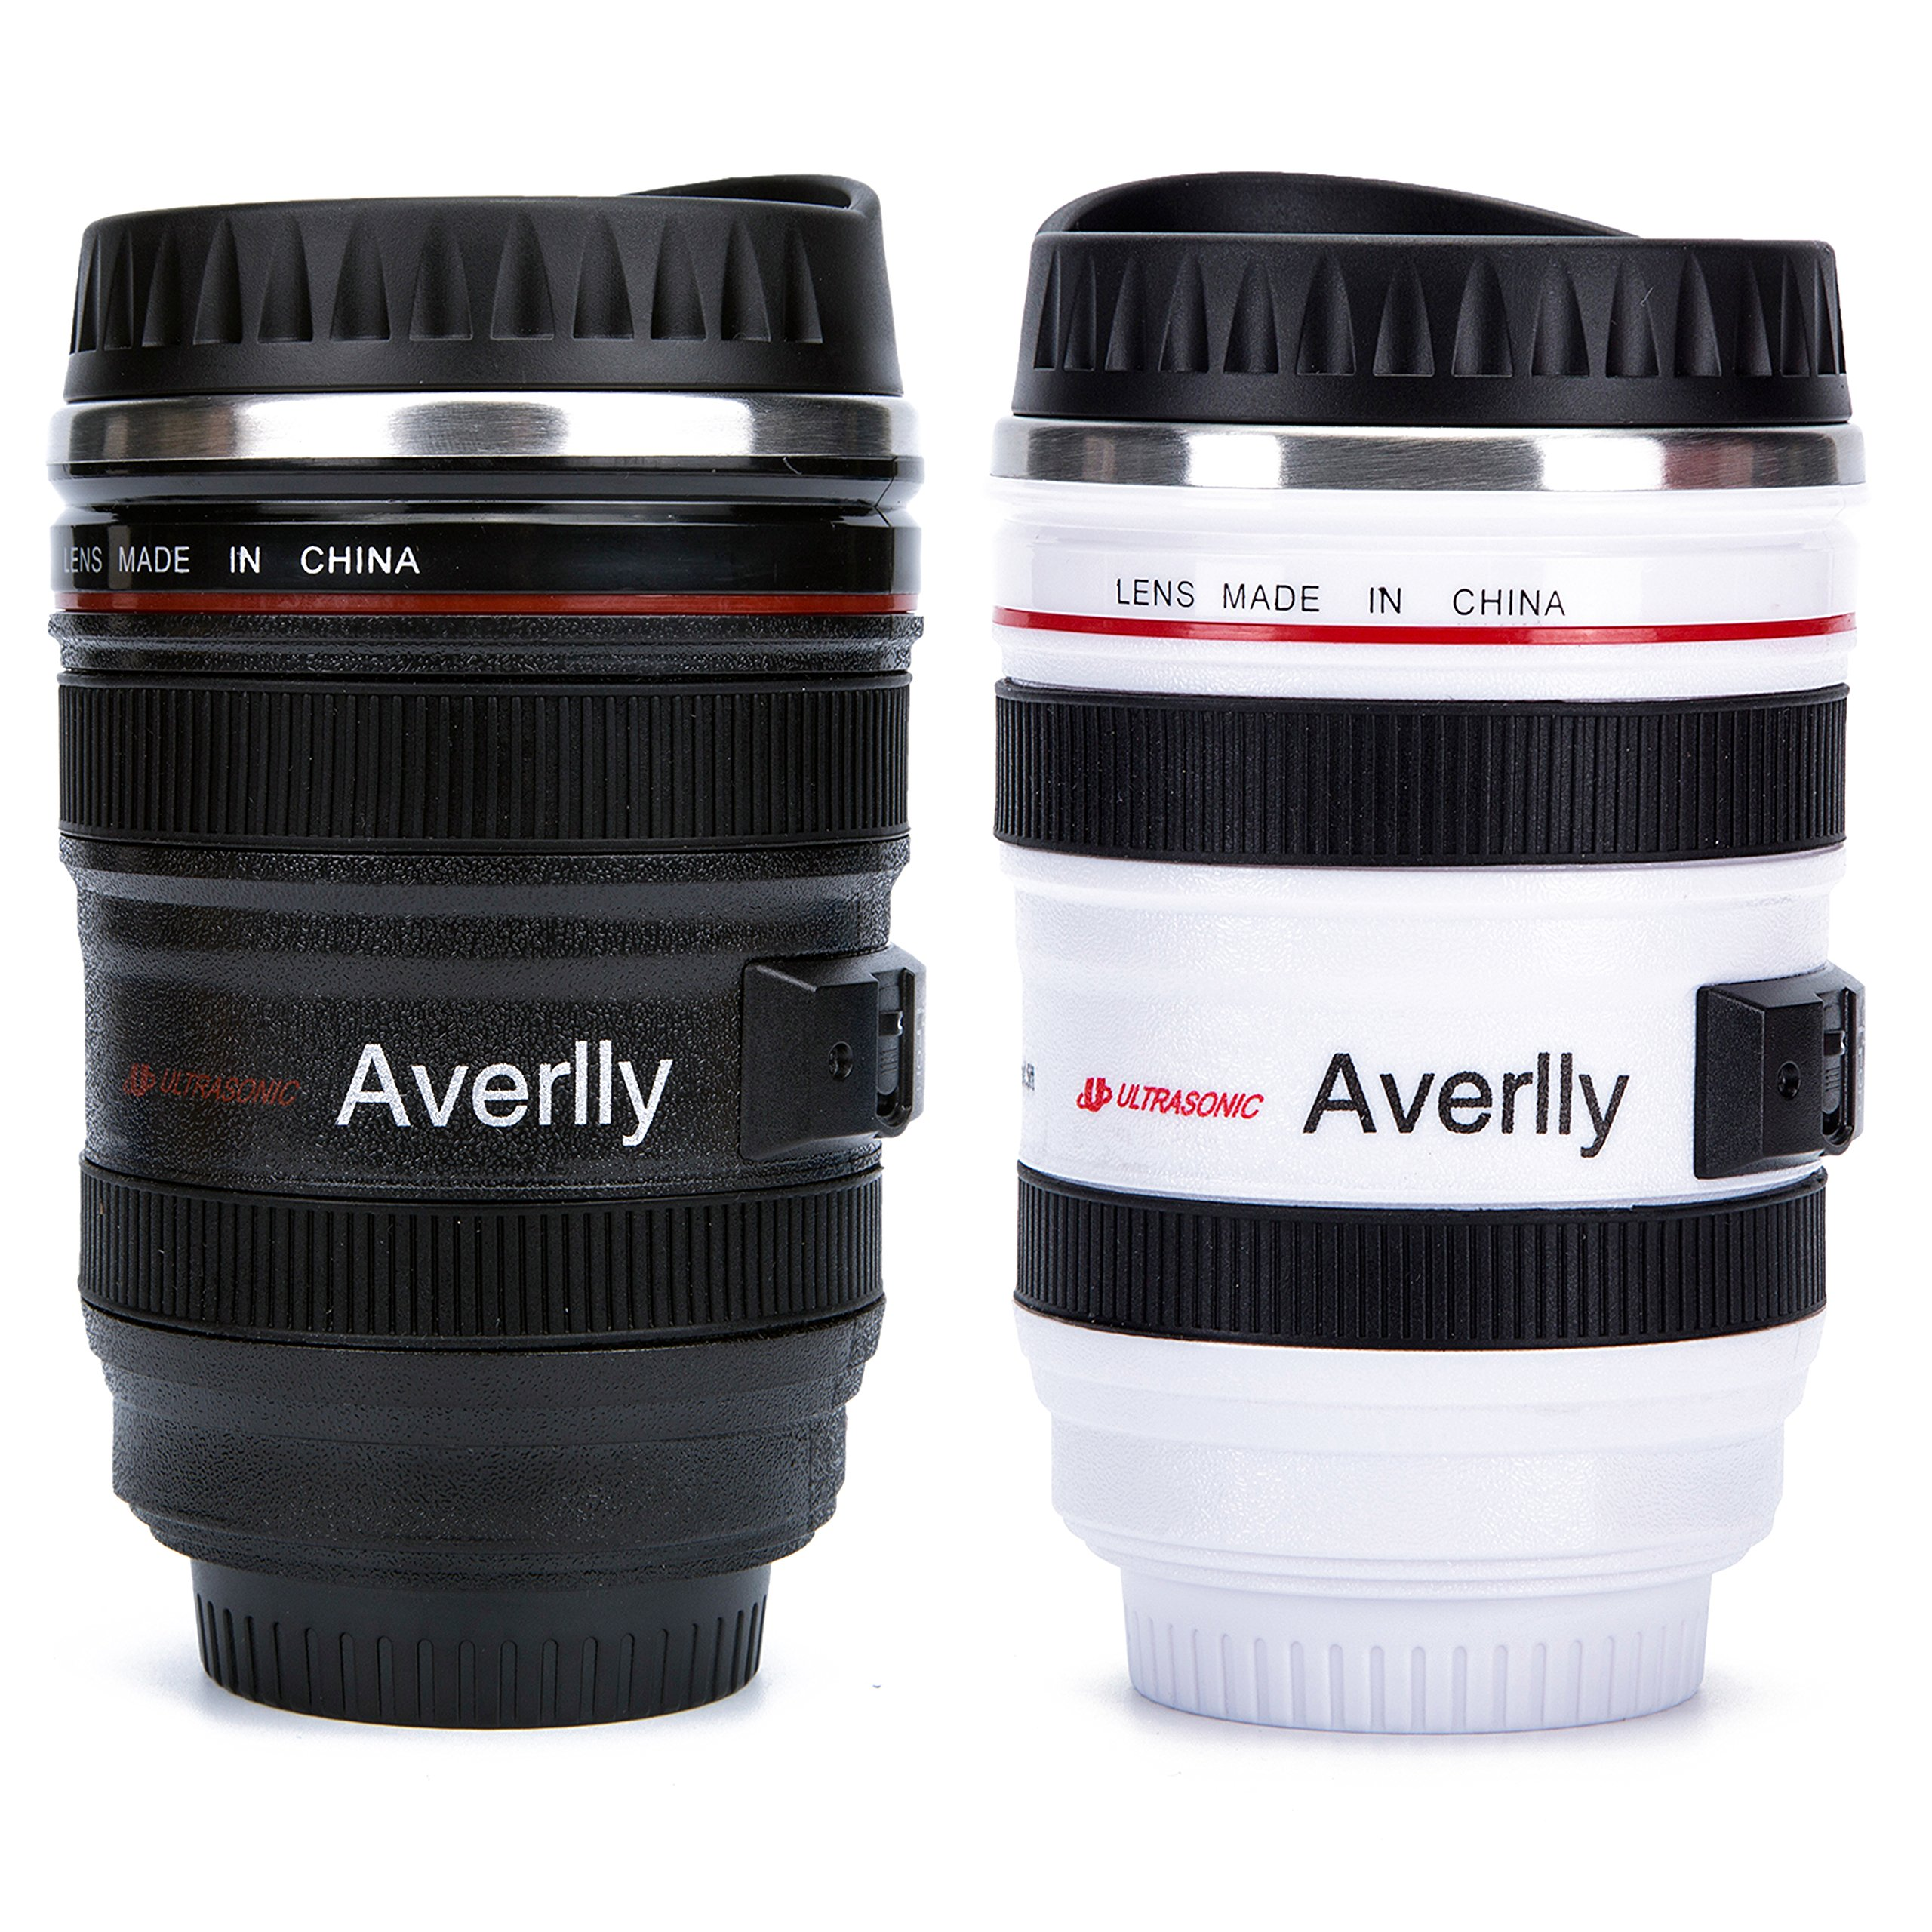 Averlly Camera Lens Coffee Mug Stainless Steel Insulated Tumbler Cup For Couples Creative Photographer Gifts (Black+White)